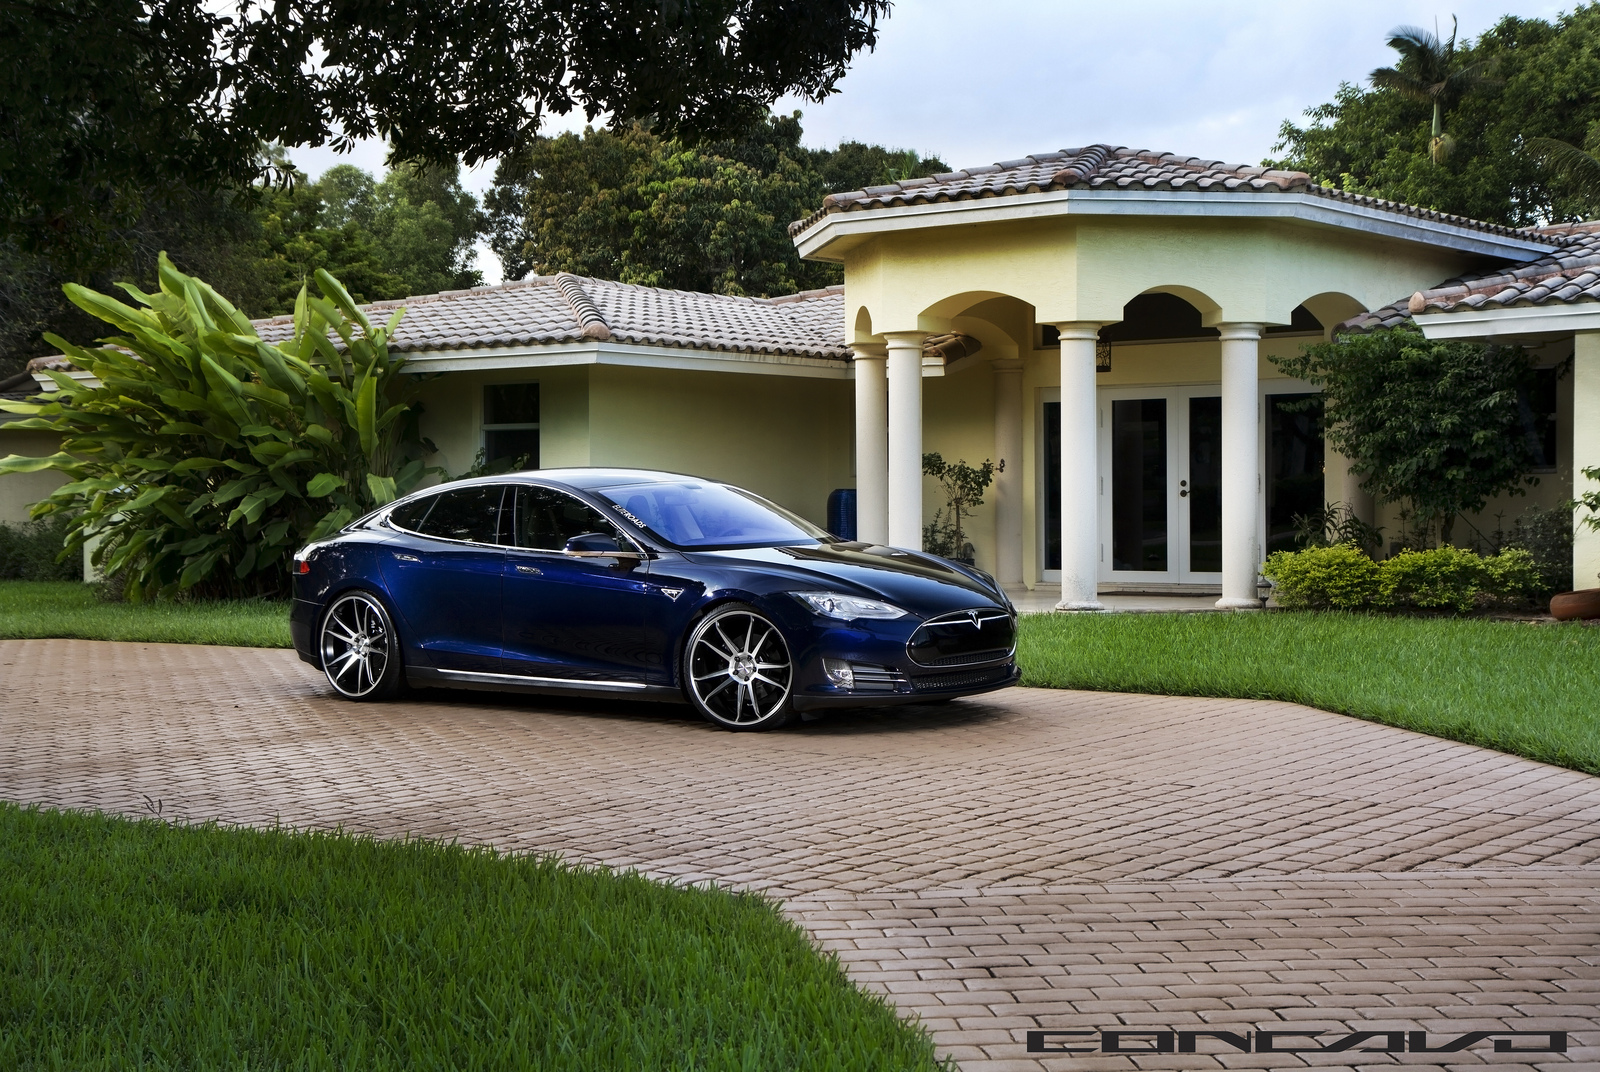 Tesla-Model-S-Concavo-22inch-Wheels